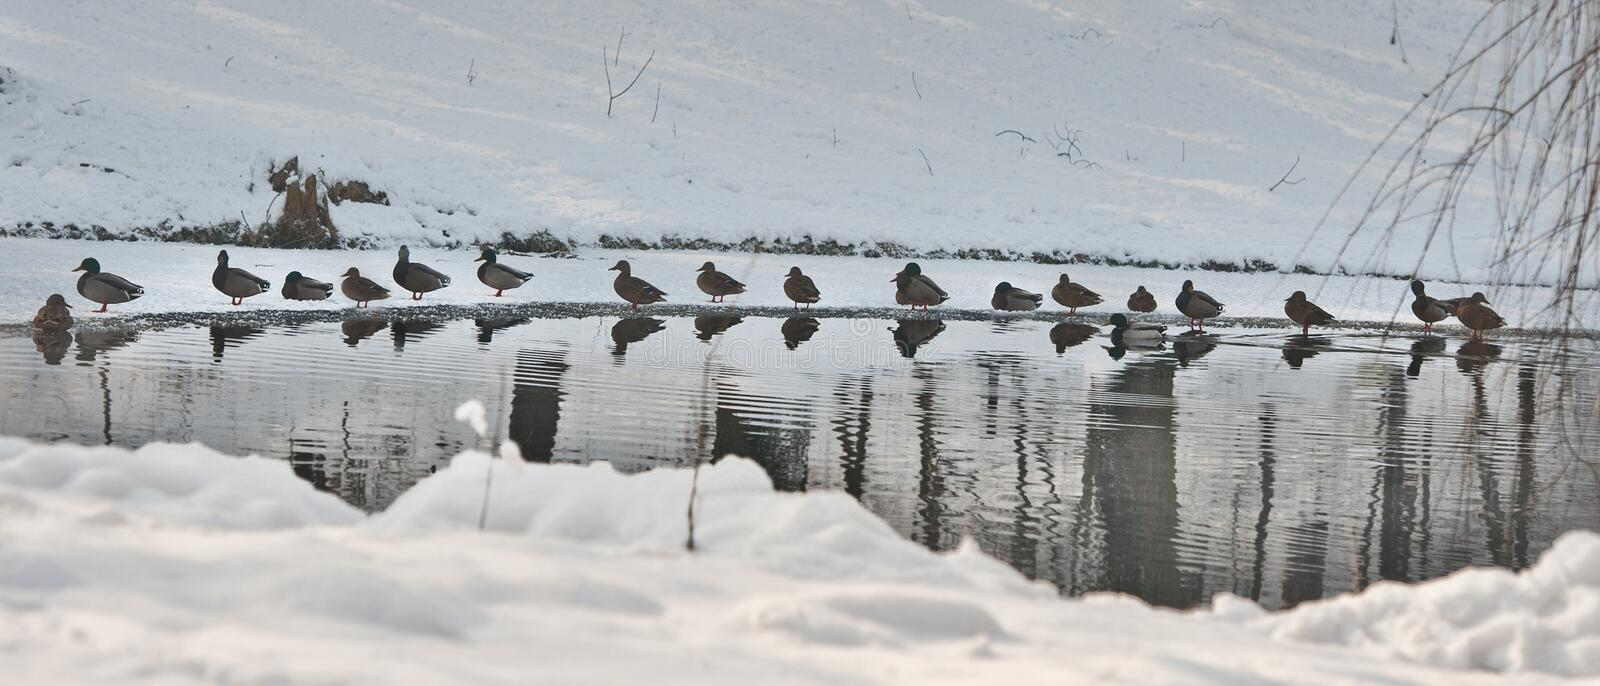 A lot of ducks near a small lake in cold winter day. Beautiful winter landscapes with snow, frozen lake and birds.  stock photography